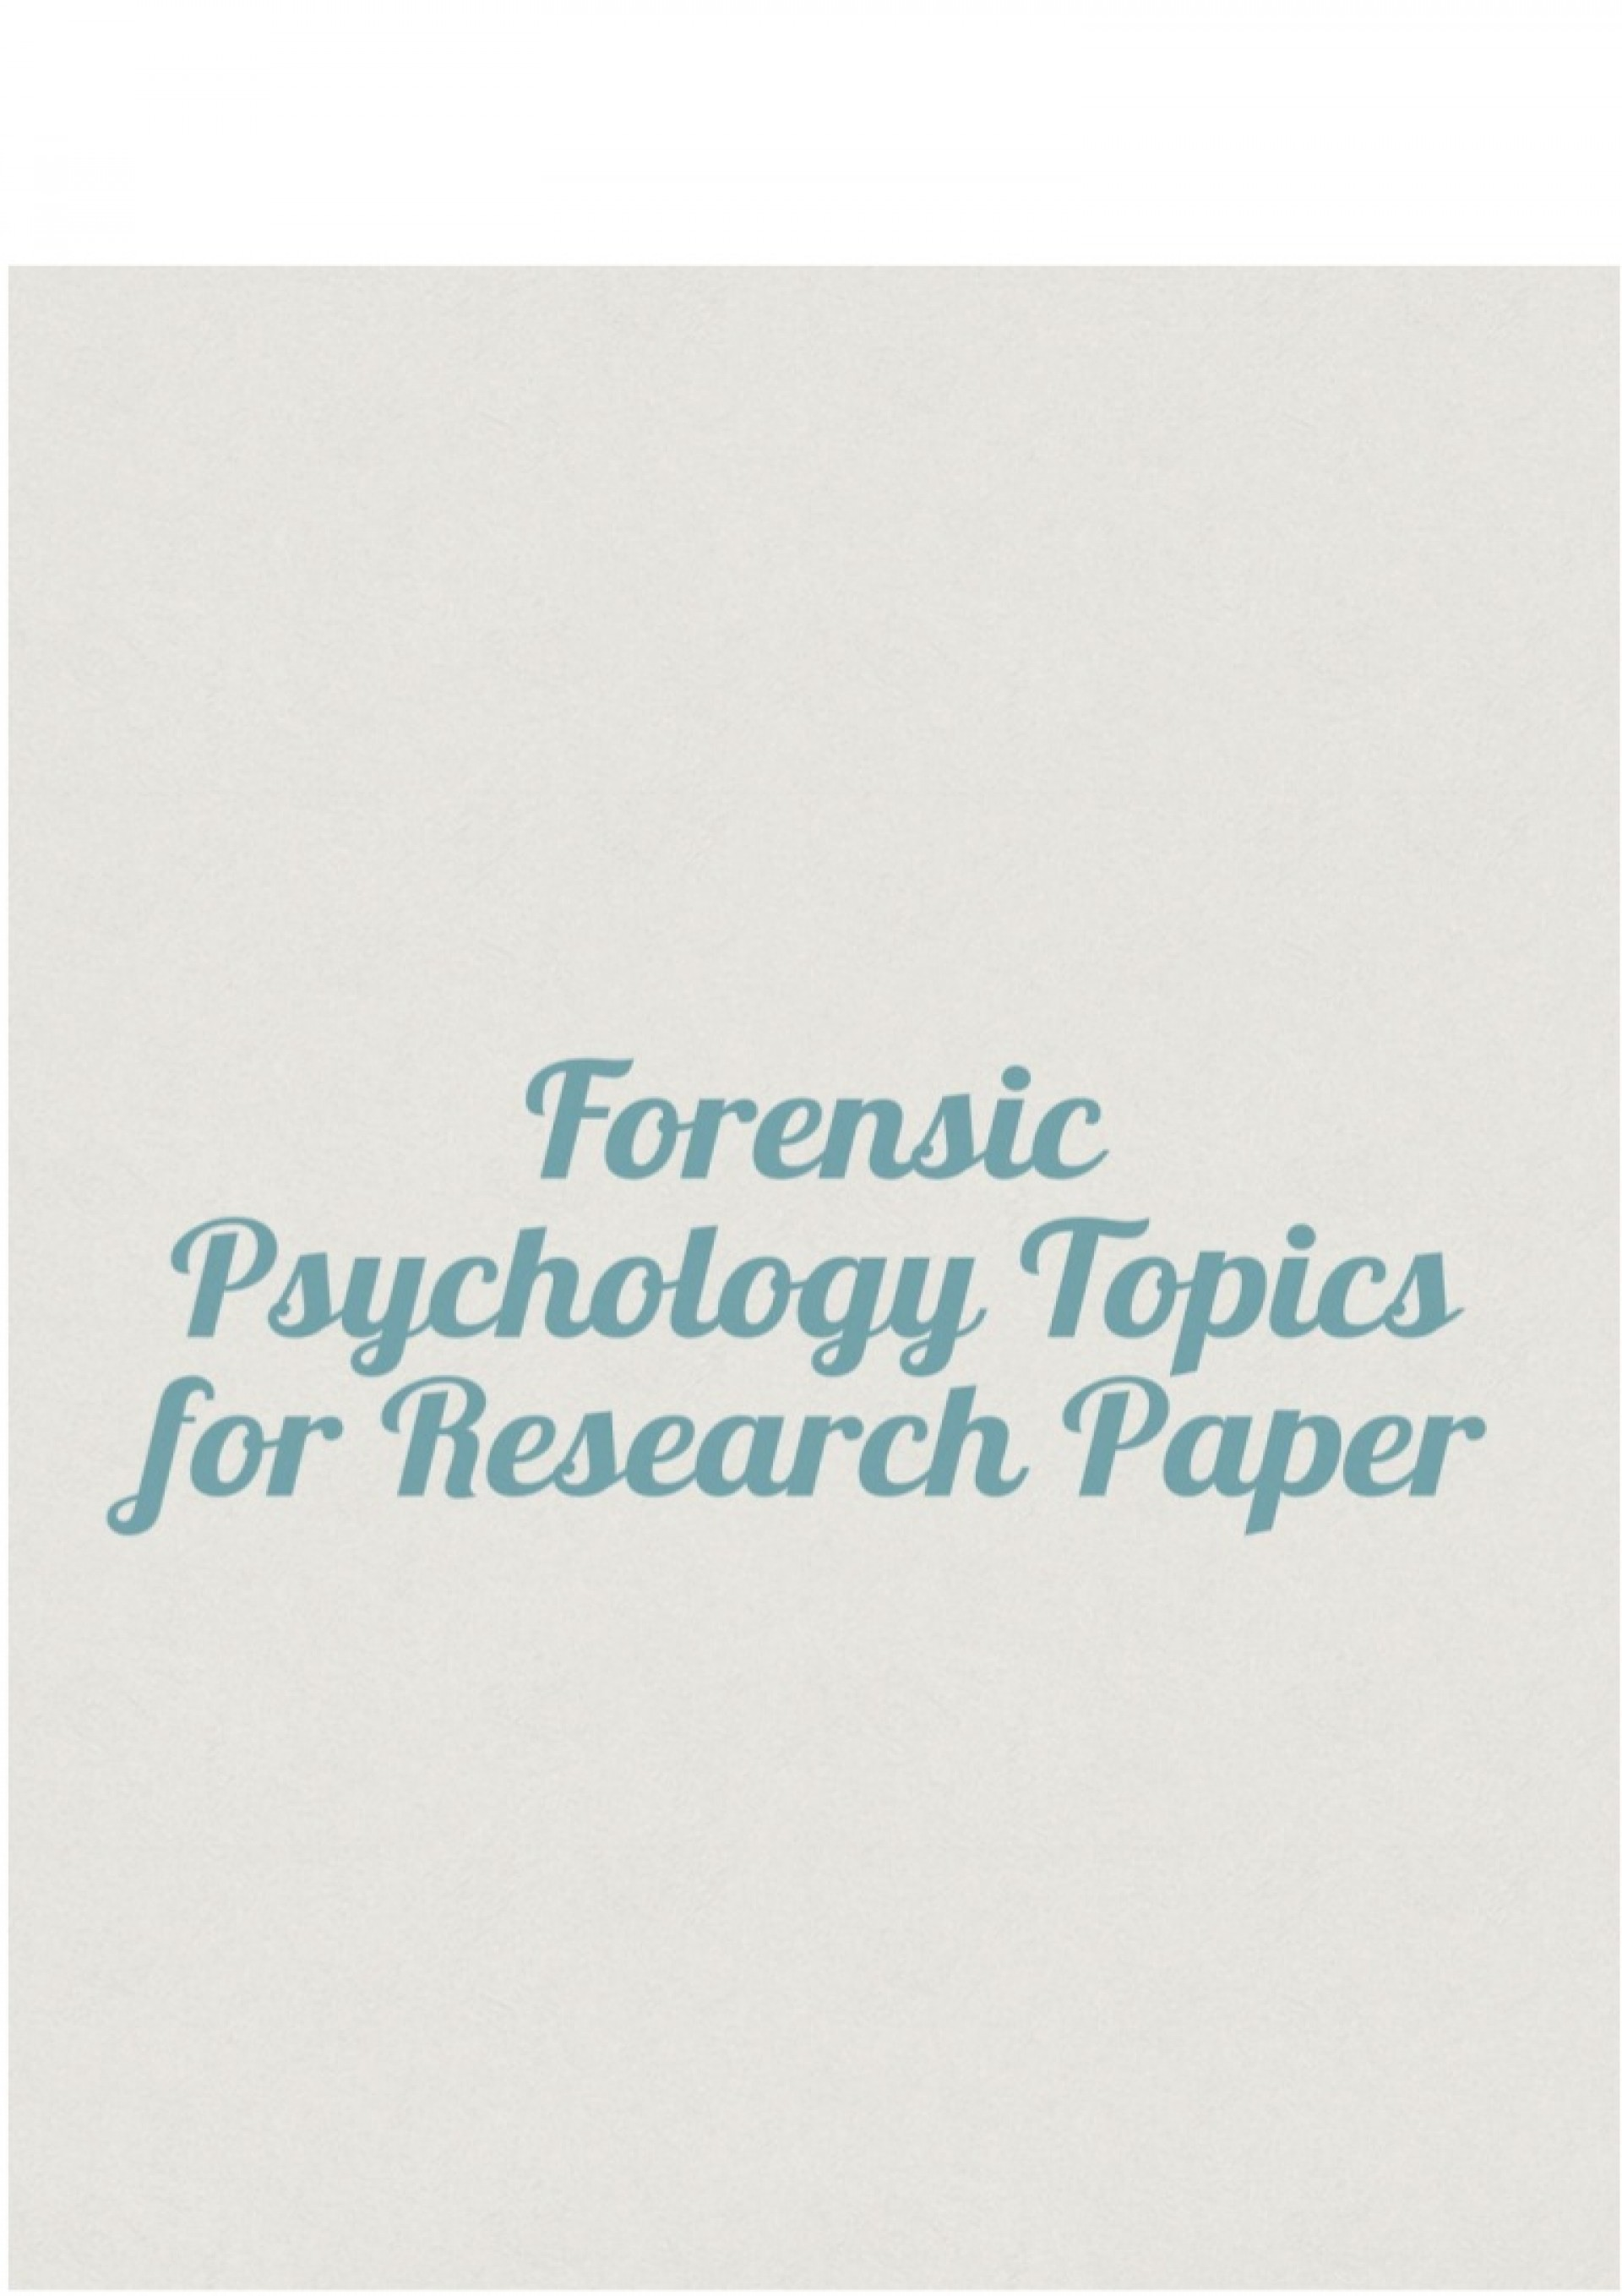 008 Psychology Topics For Research Paper Forensicpsychologytopicsforresearchpaper Thumbnail Wondrous Child Papers Abnormal 1920